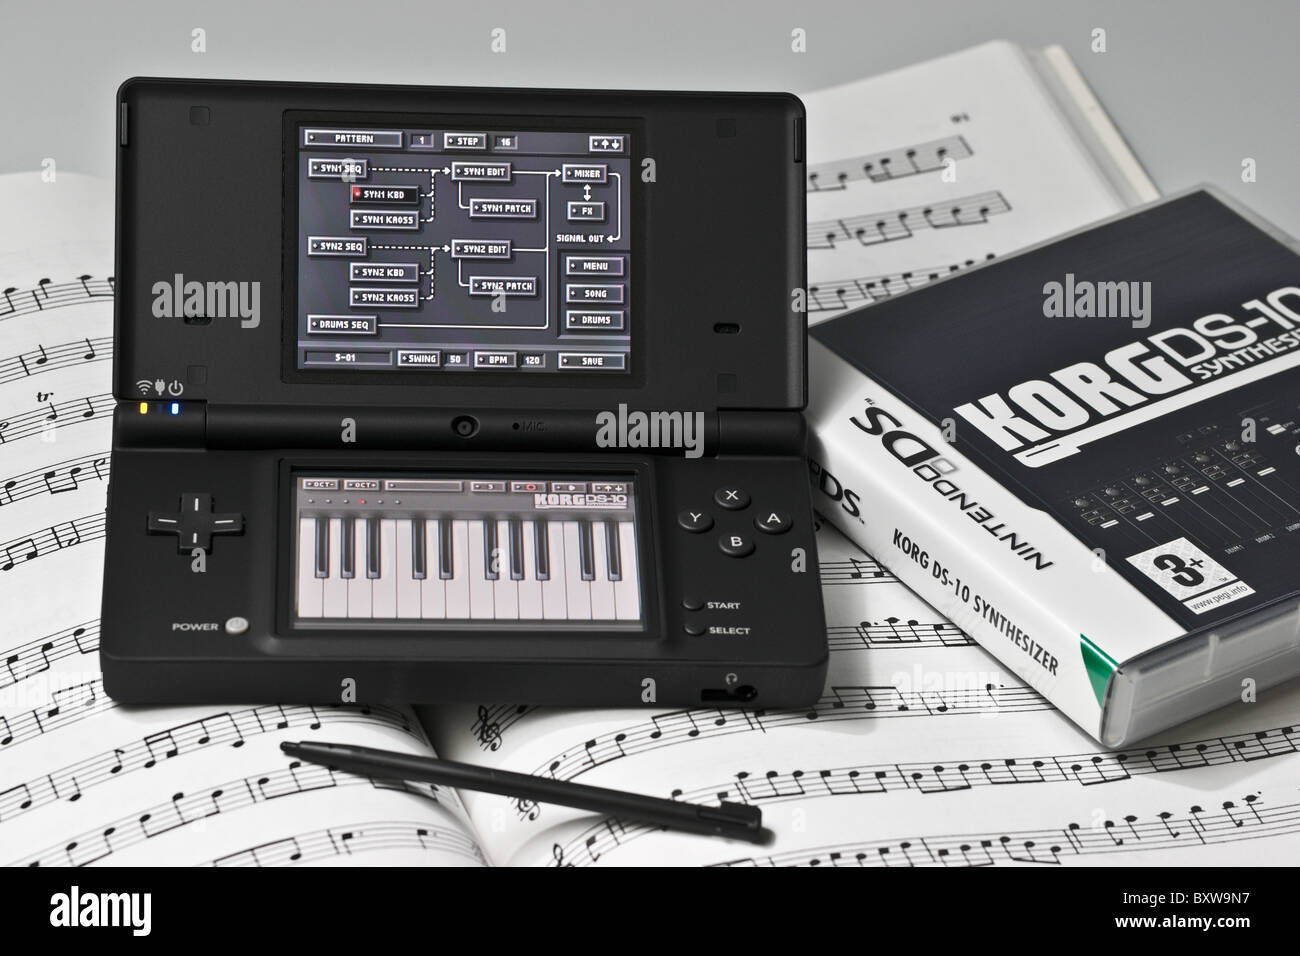 Nintendo DS2 hand held electronic game with Korg DS-10 music synthesizer and sequencer program - Stock Image